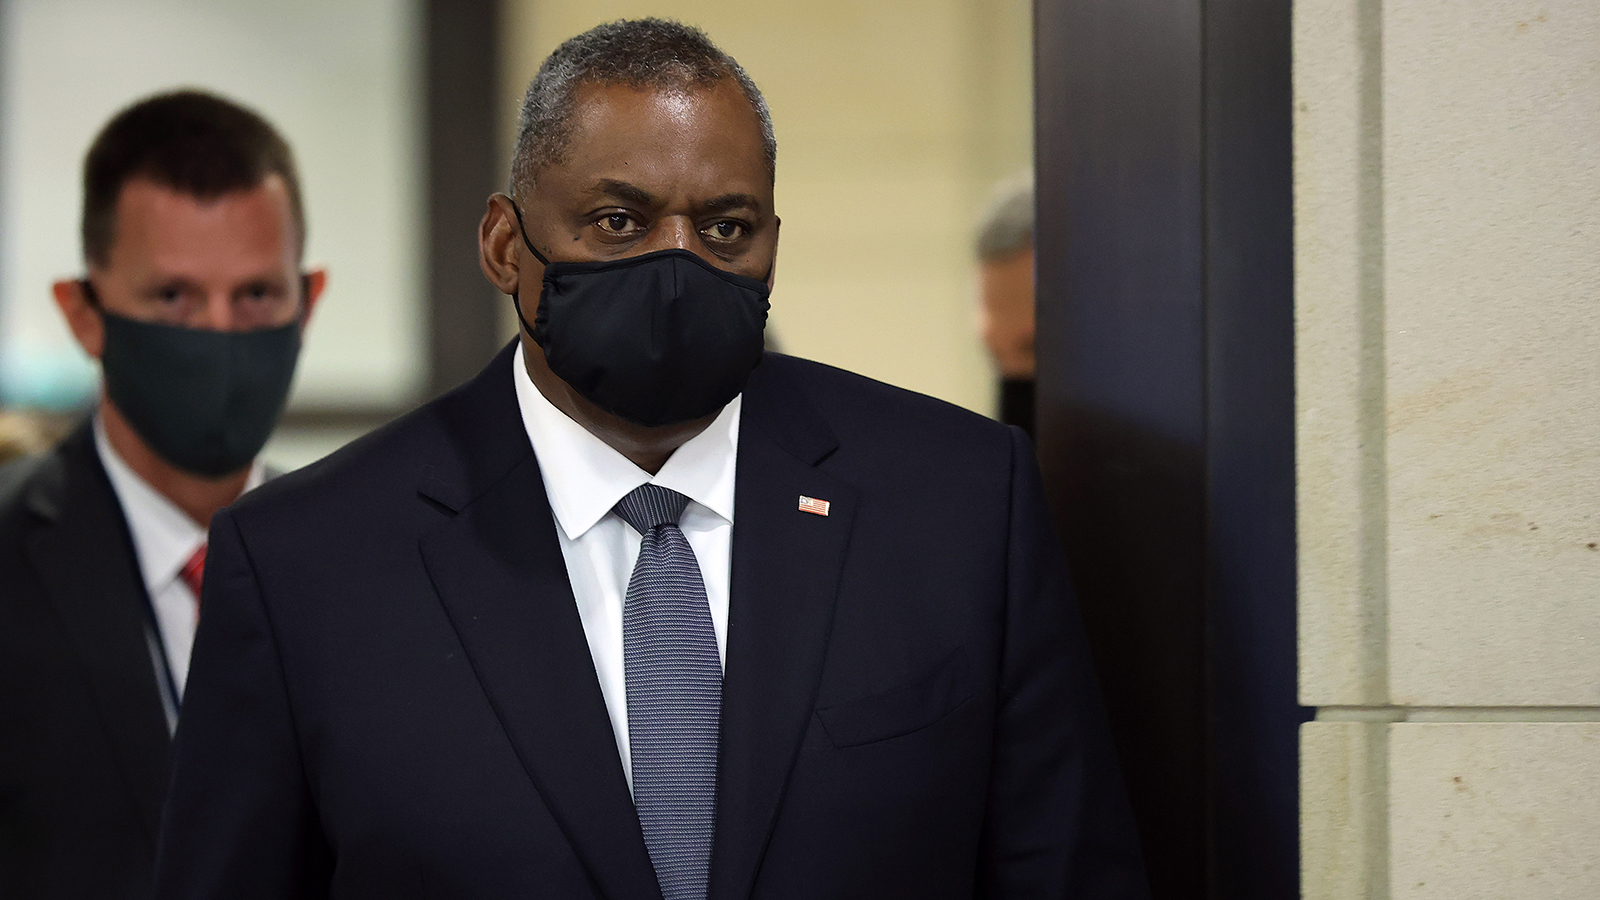 US Secretary of Defense Lloyd Austin arrives at the US Capitol before briefing members of the House of Representatives on August 24 in Washington, DC.